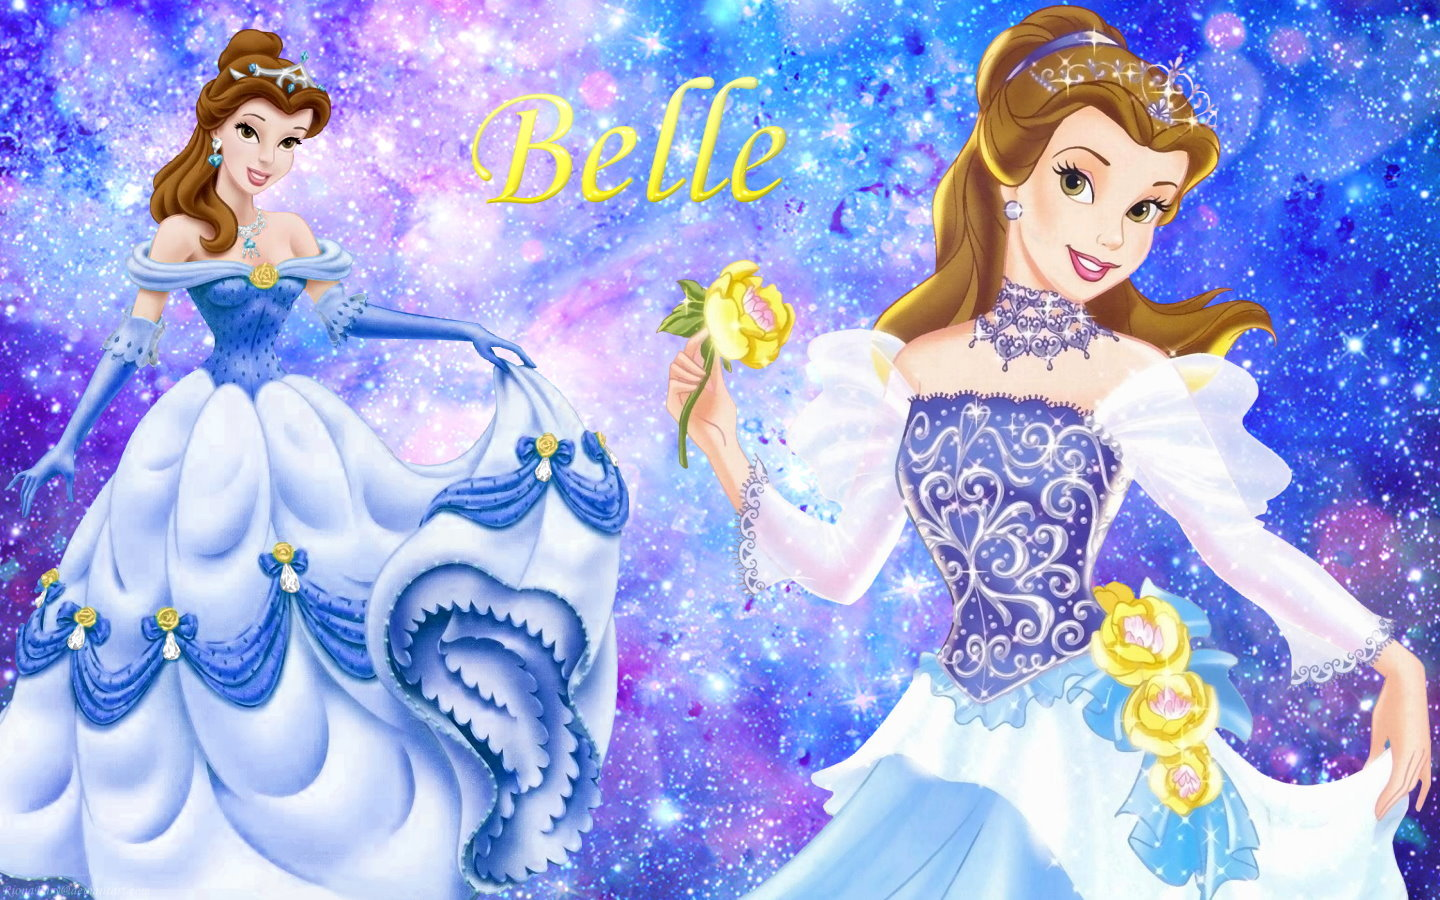 Belle-beauty-and-the-beast-23765679-1440-900.jpg